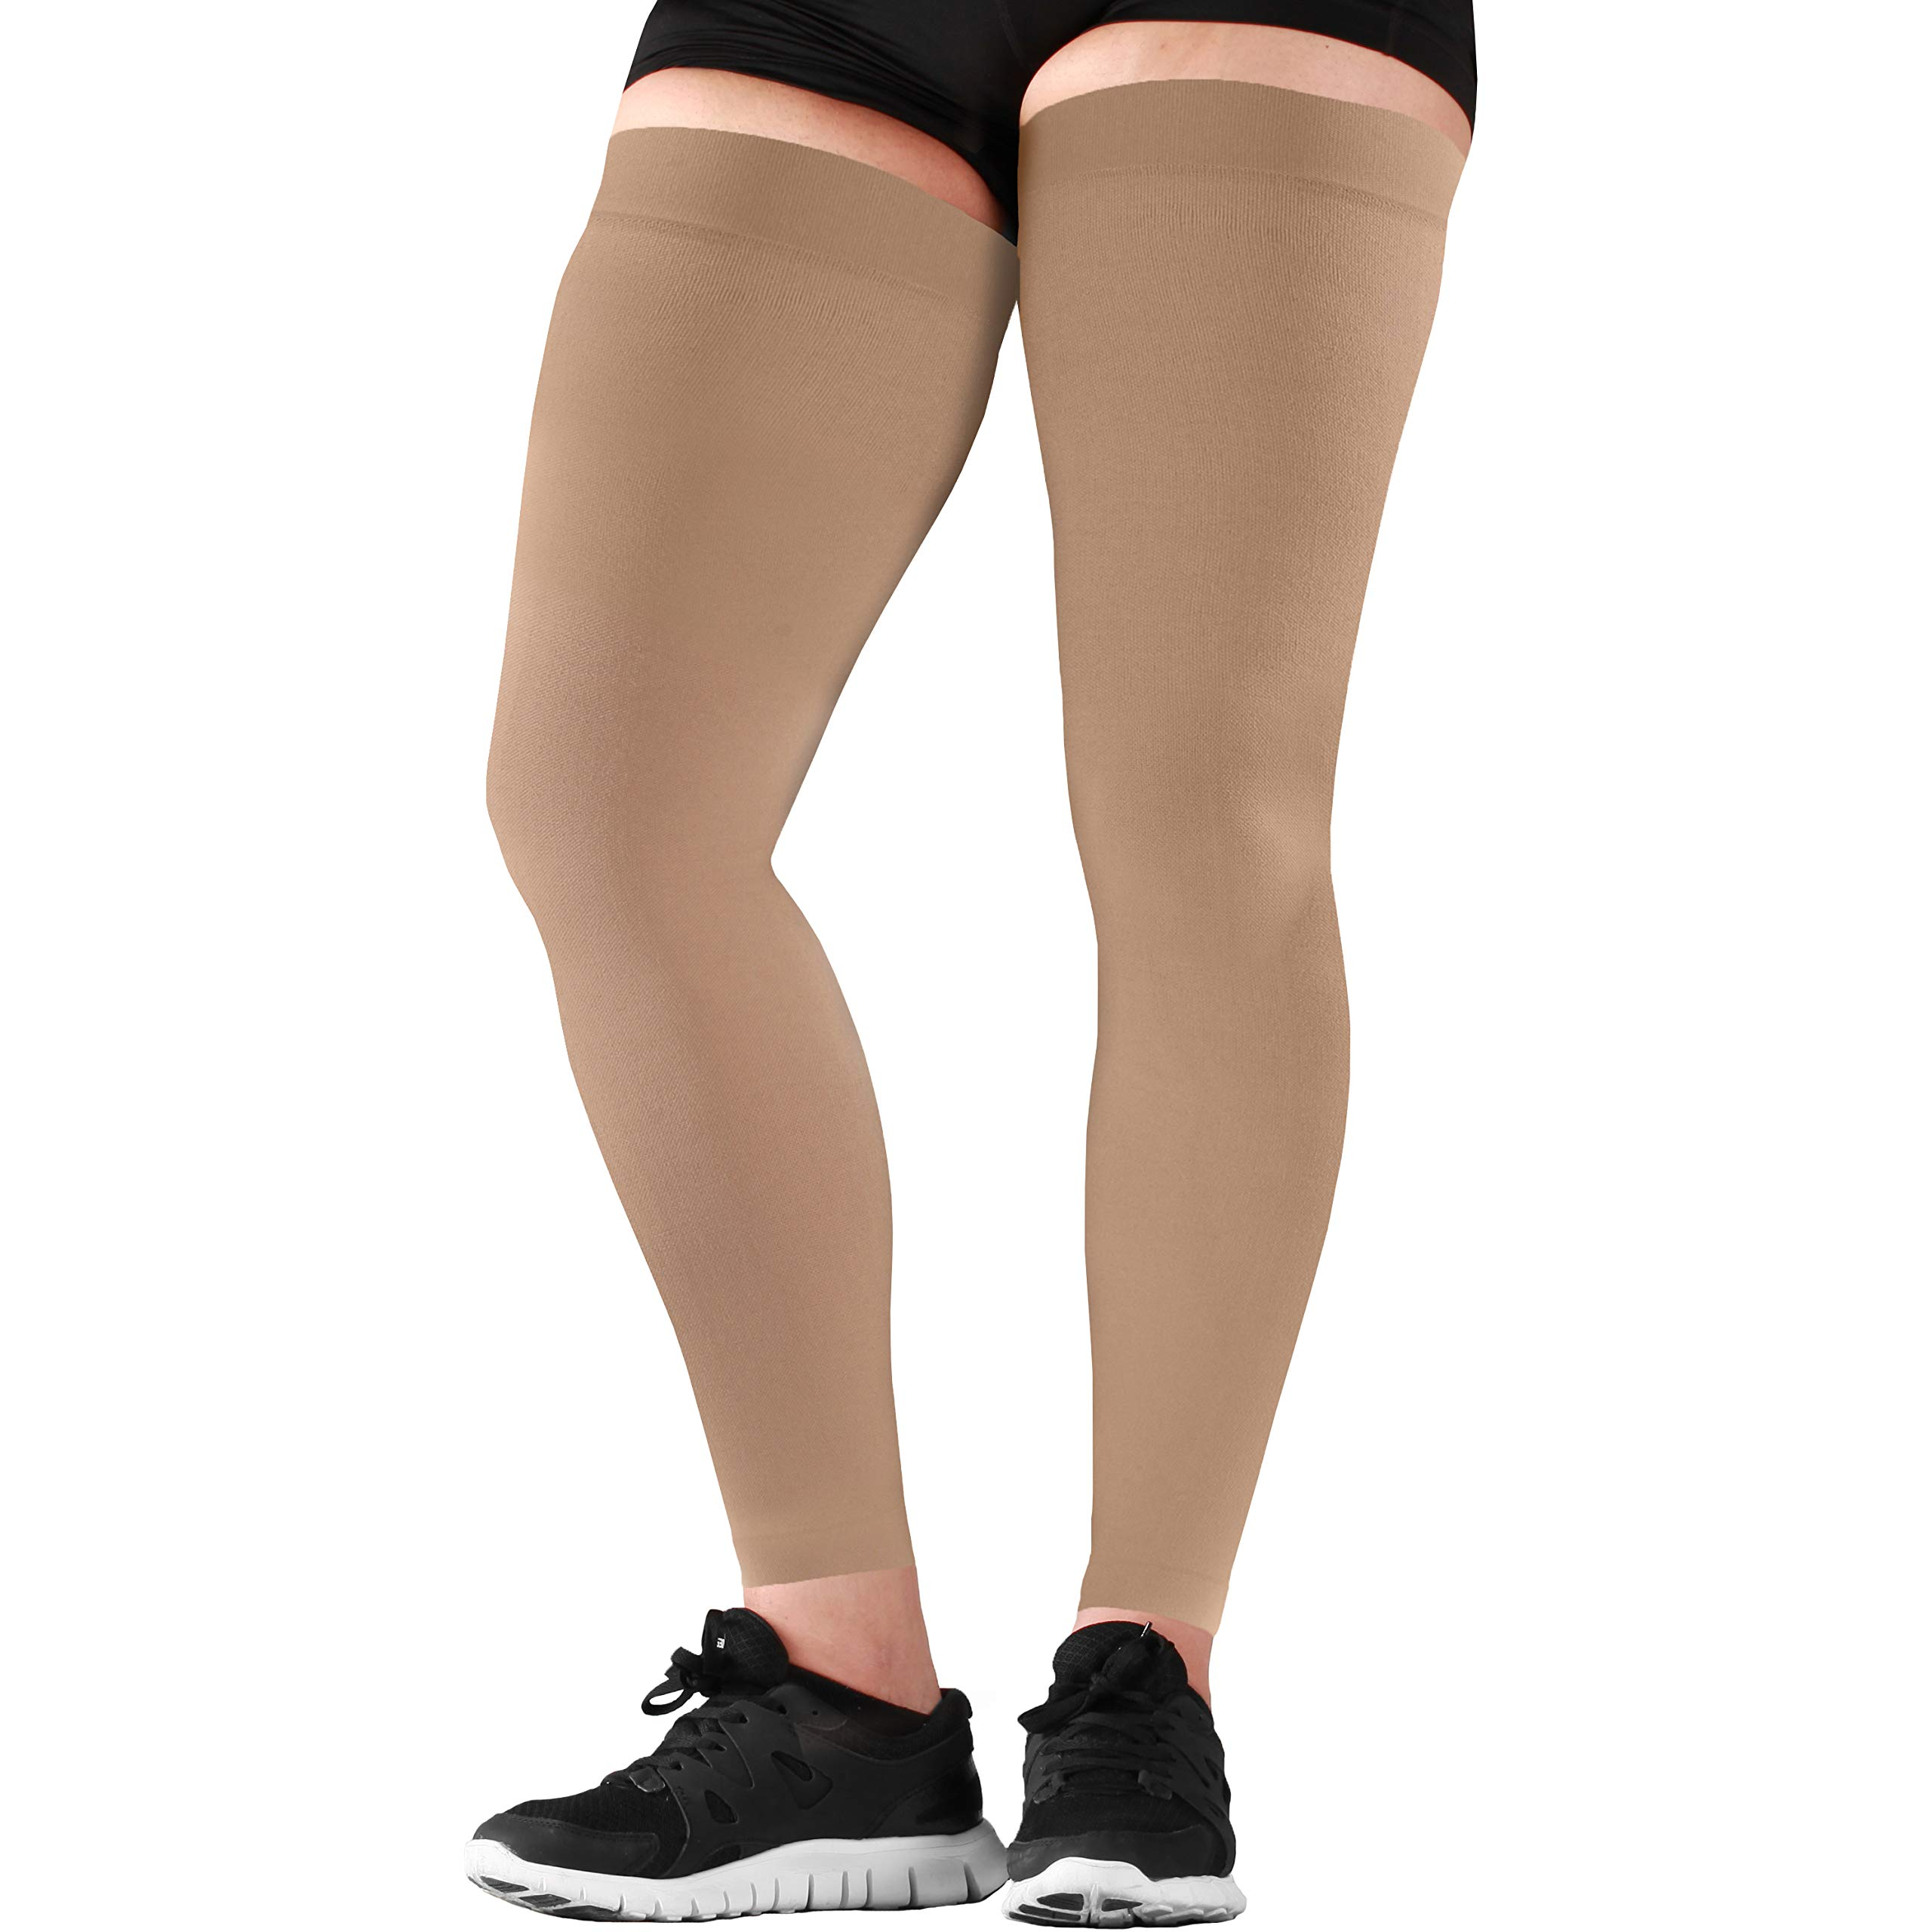 Mojo Compression Thigh Sleeve - Sports Full Leg Support & Recovery Sock Sleeve -Treat Hamstring and Quad Injuries - Hamstring Compression Sleeve - Running Compression Thigh Sleeve (X-Large, Beige) by Mojo Compression socks